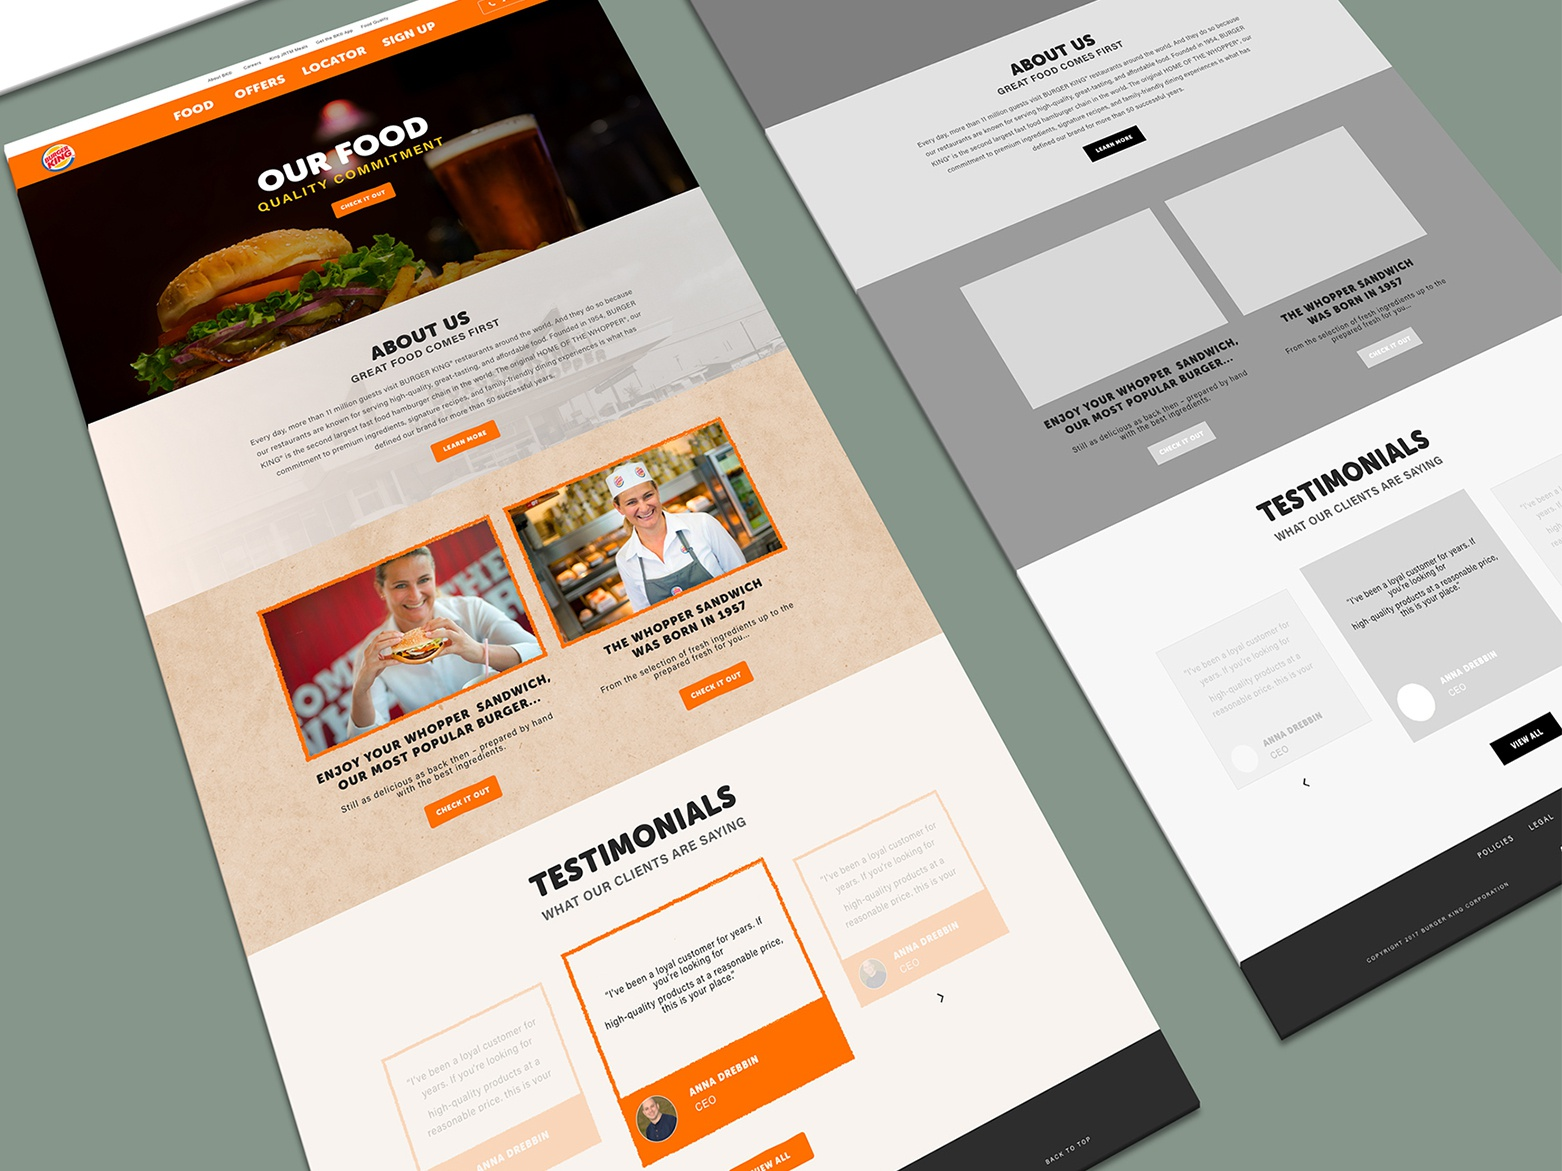 Web site design one page template landing page webdesign food website website website design